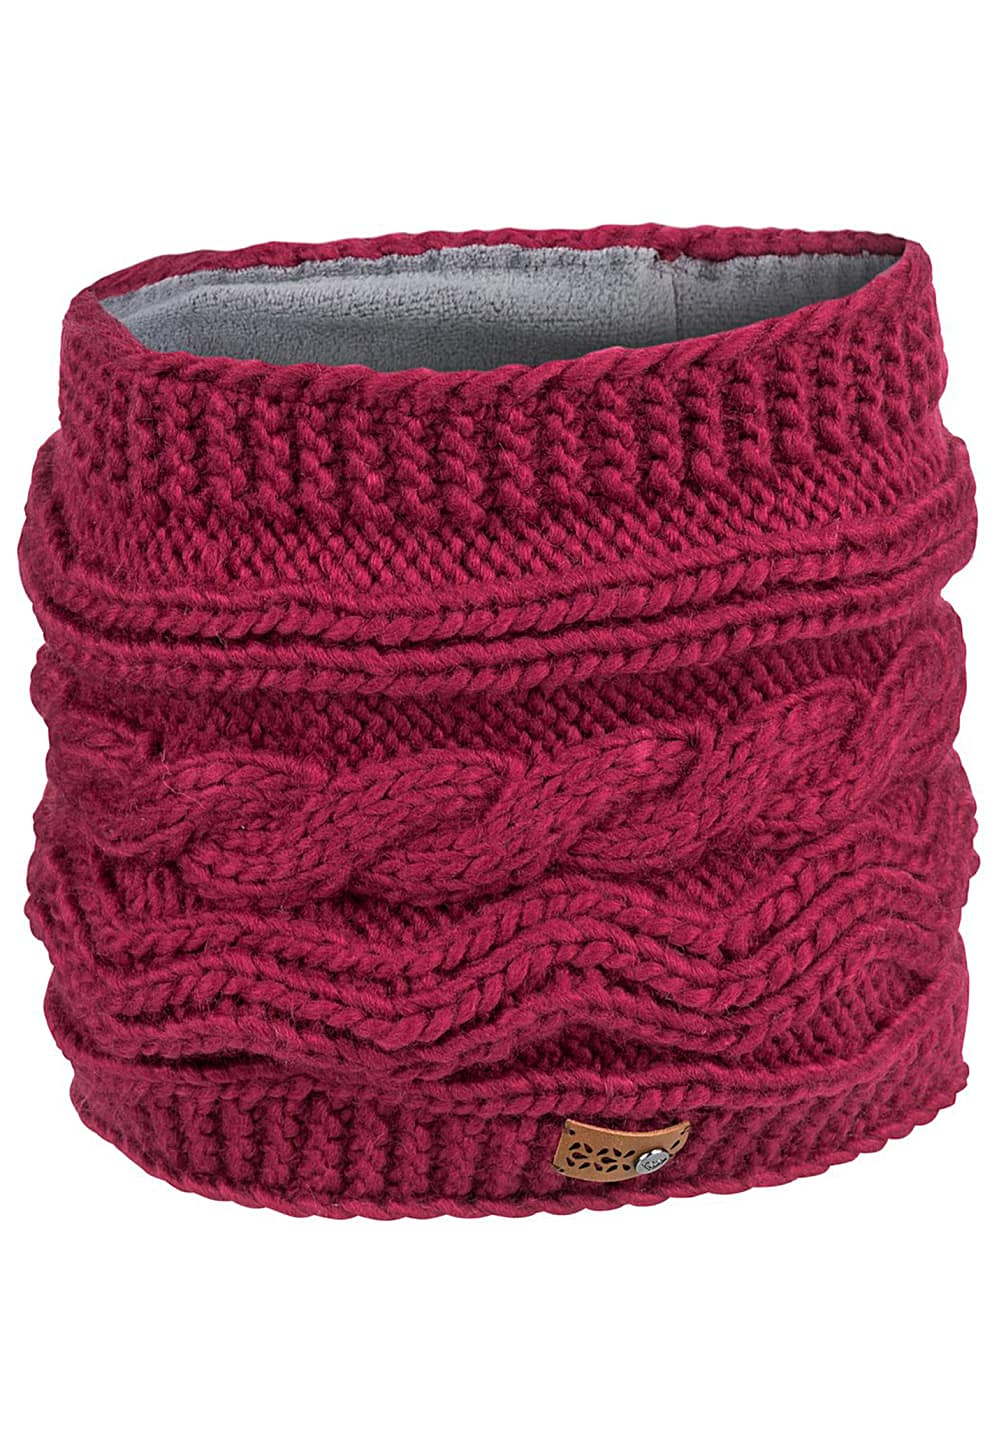 Schals für Frauen - Roxy Winter Collar Neckwarmer für Damen Rot  - Onlineshop Planet Sports